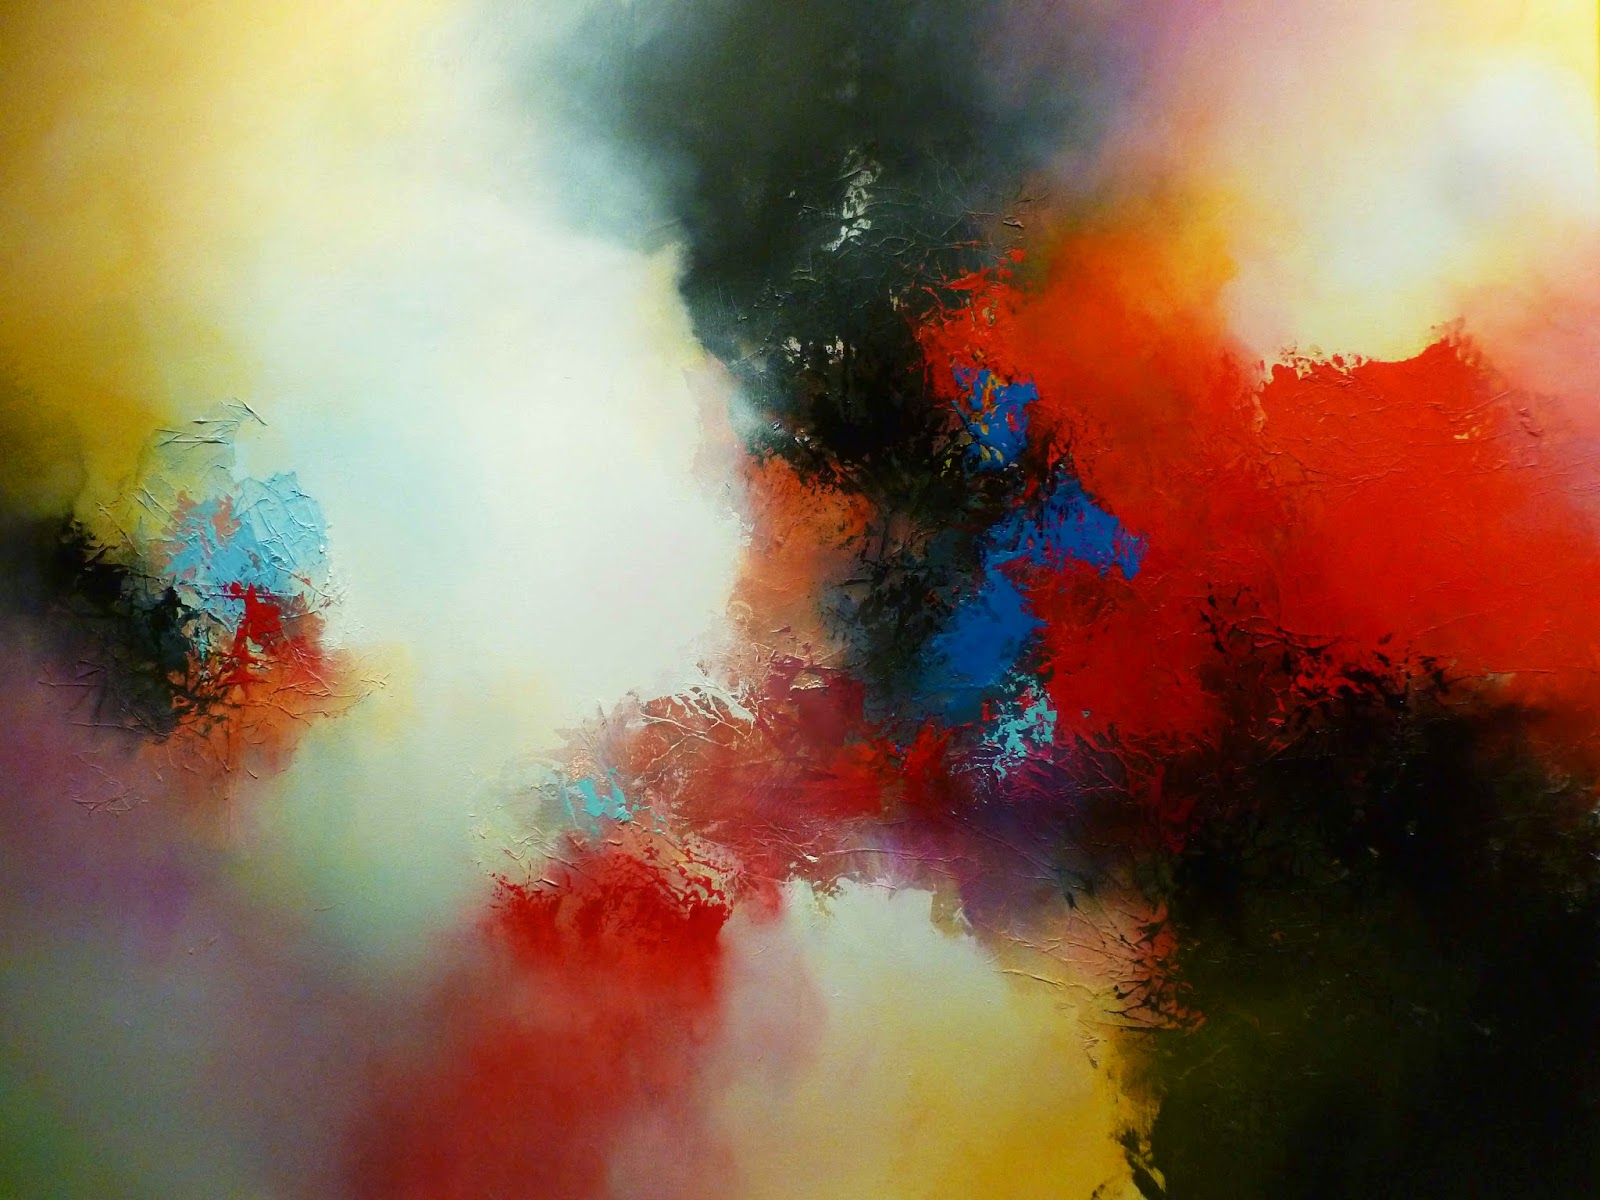 SIMON KENNYS LATEST ABSTRACT PAINTINGS ON CANVAS